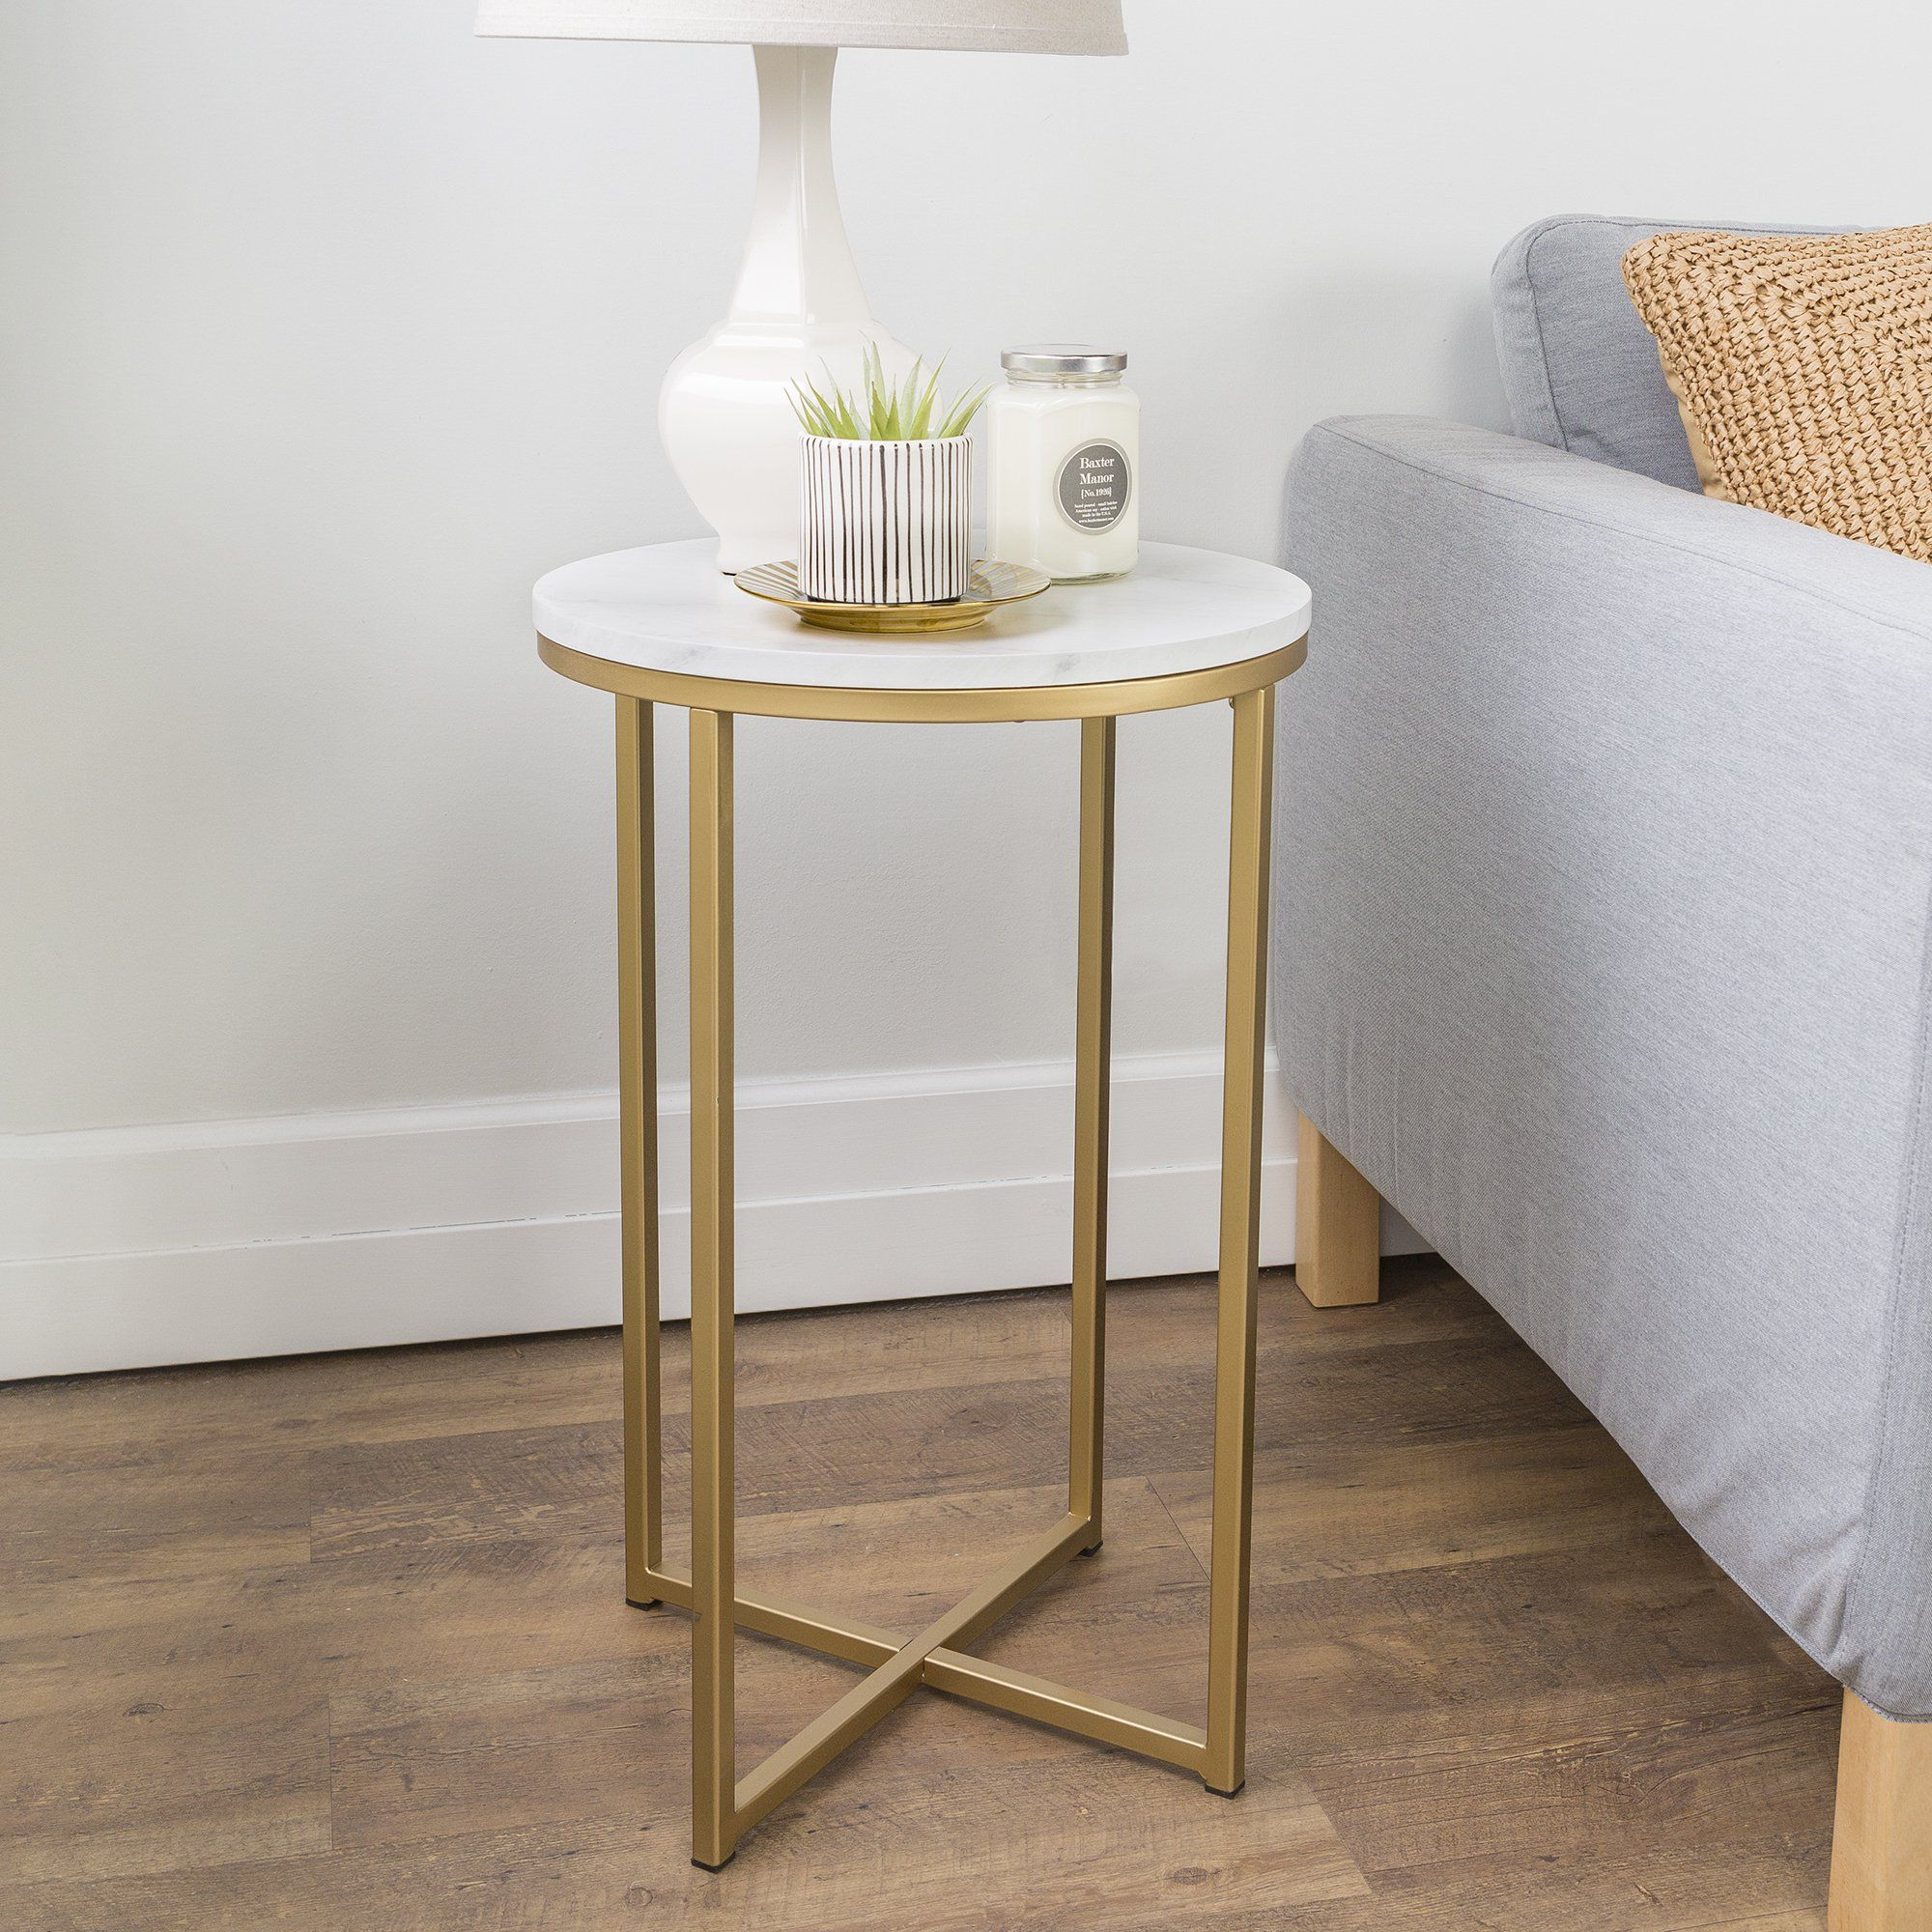 Daisy White Faux Marble And Gold Round End Table By Ember Interiors Walmart Com Table Decor Living Room Living Room Side Table Side Table Decor